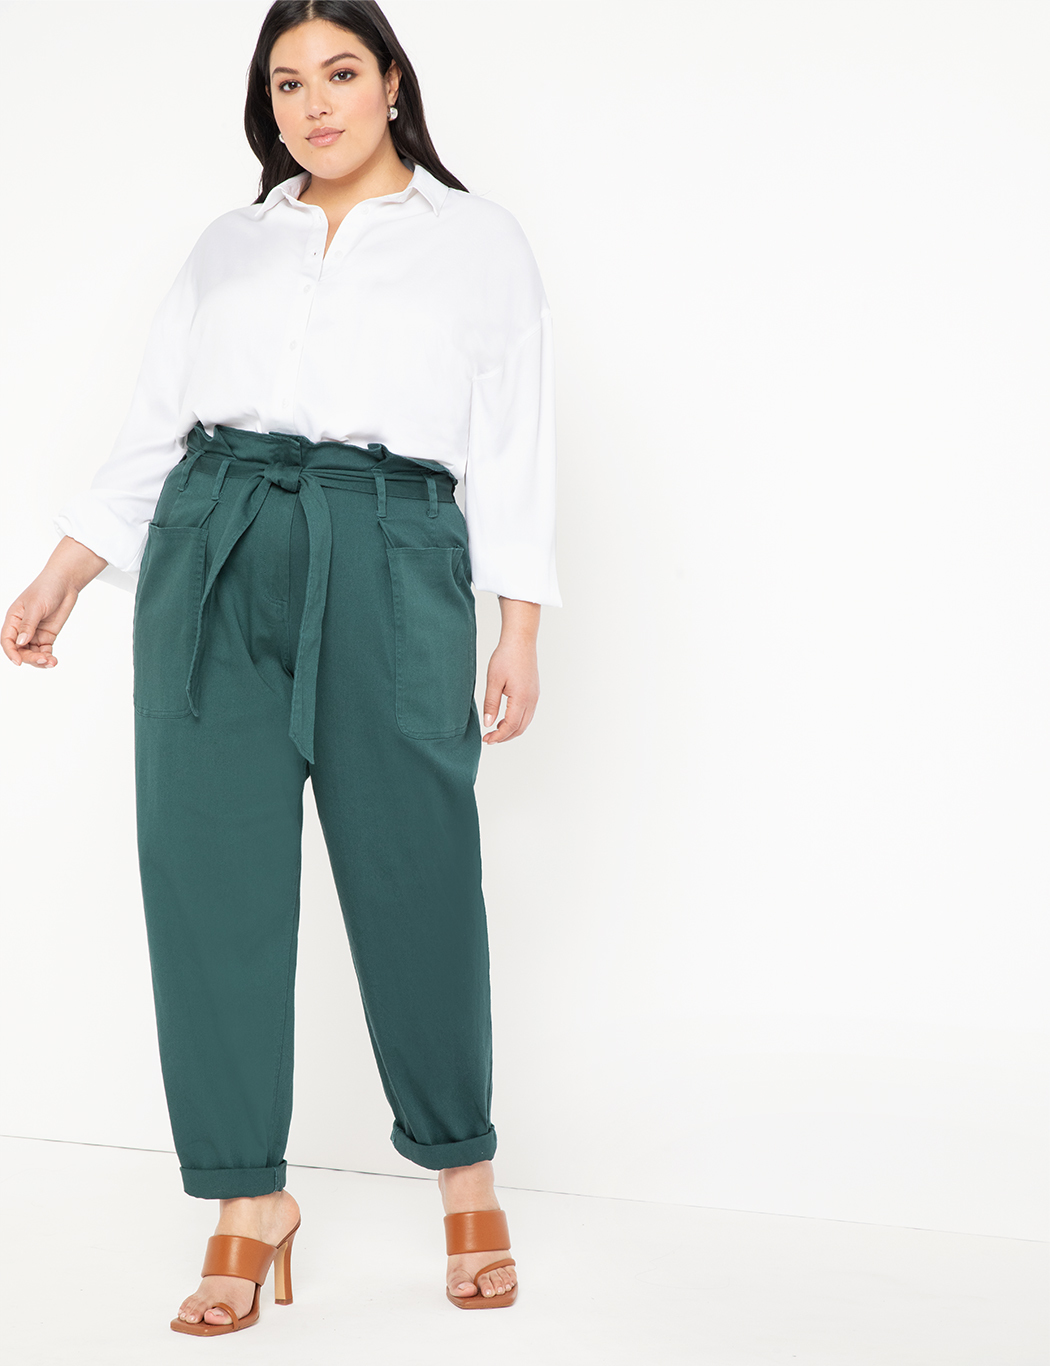 Cinched Waist Pant with Roll Cuff